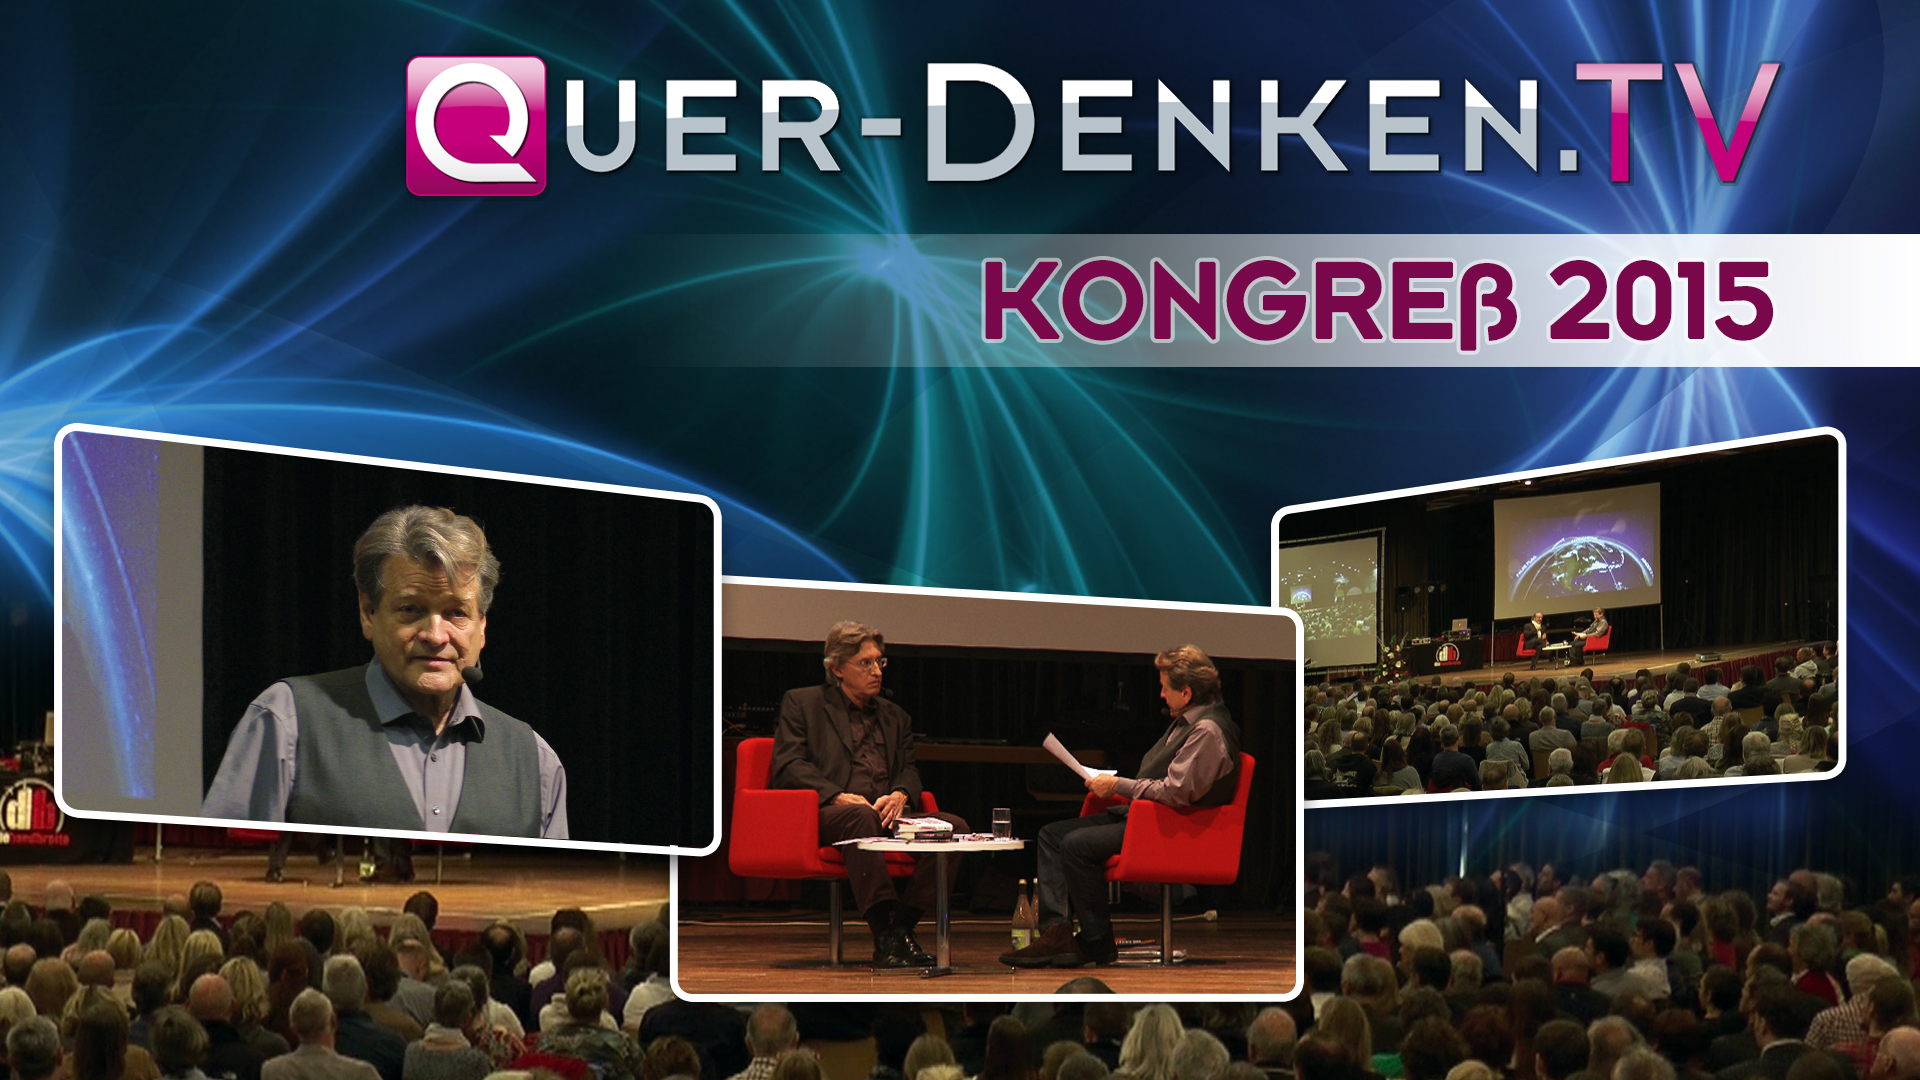 Querdenken Kongress 2015